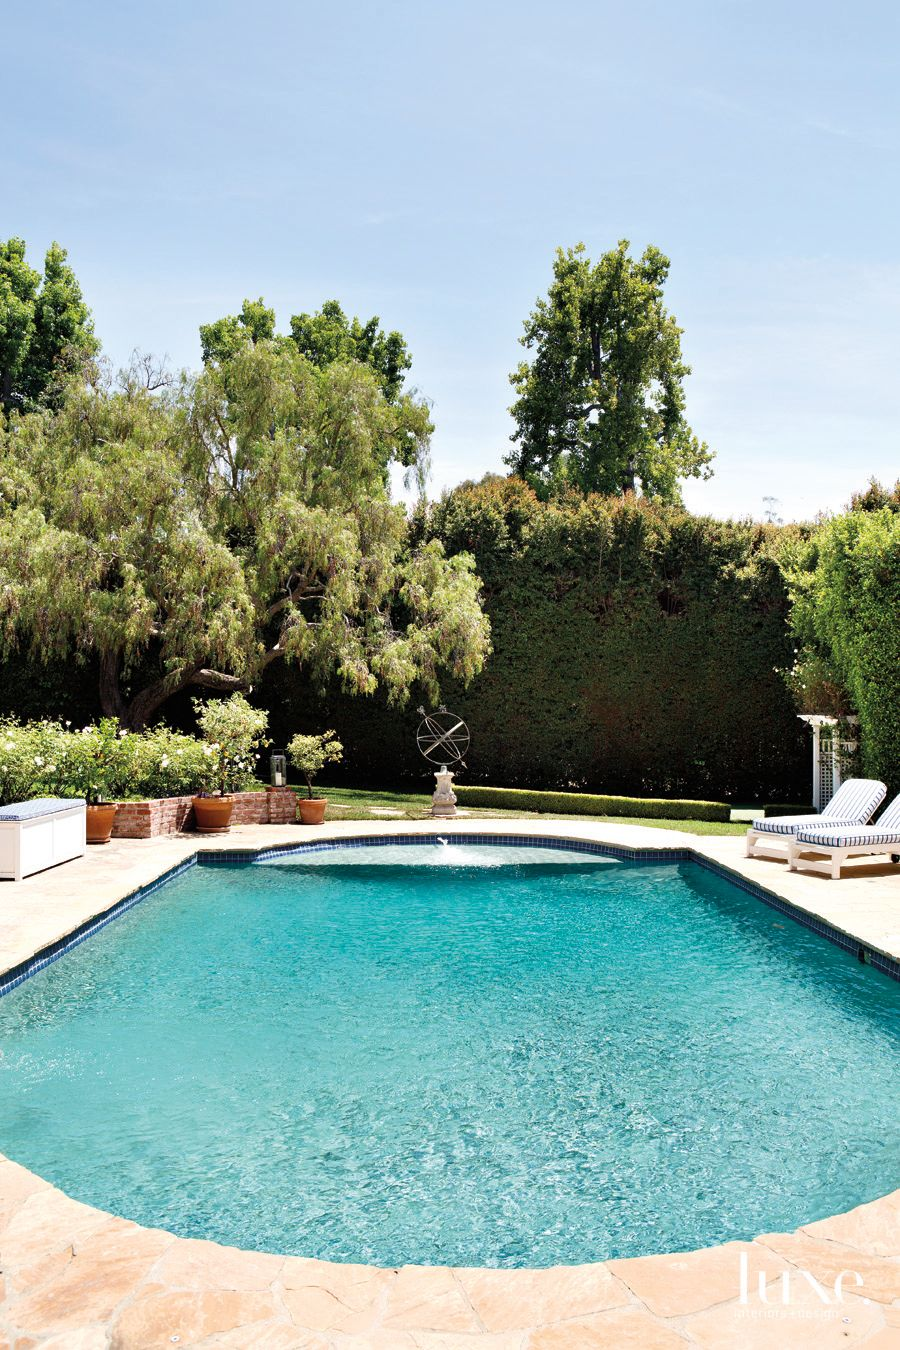 Traditional Neutral Pool Area with Striped Chaises